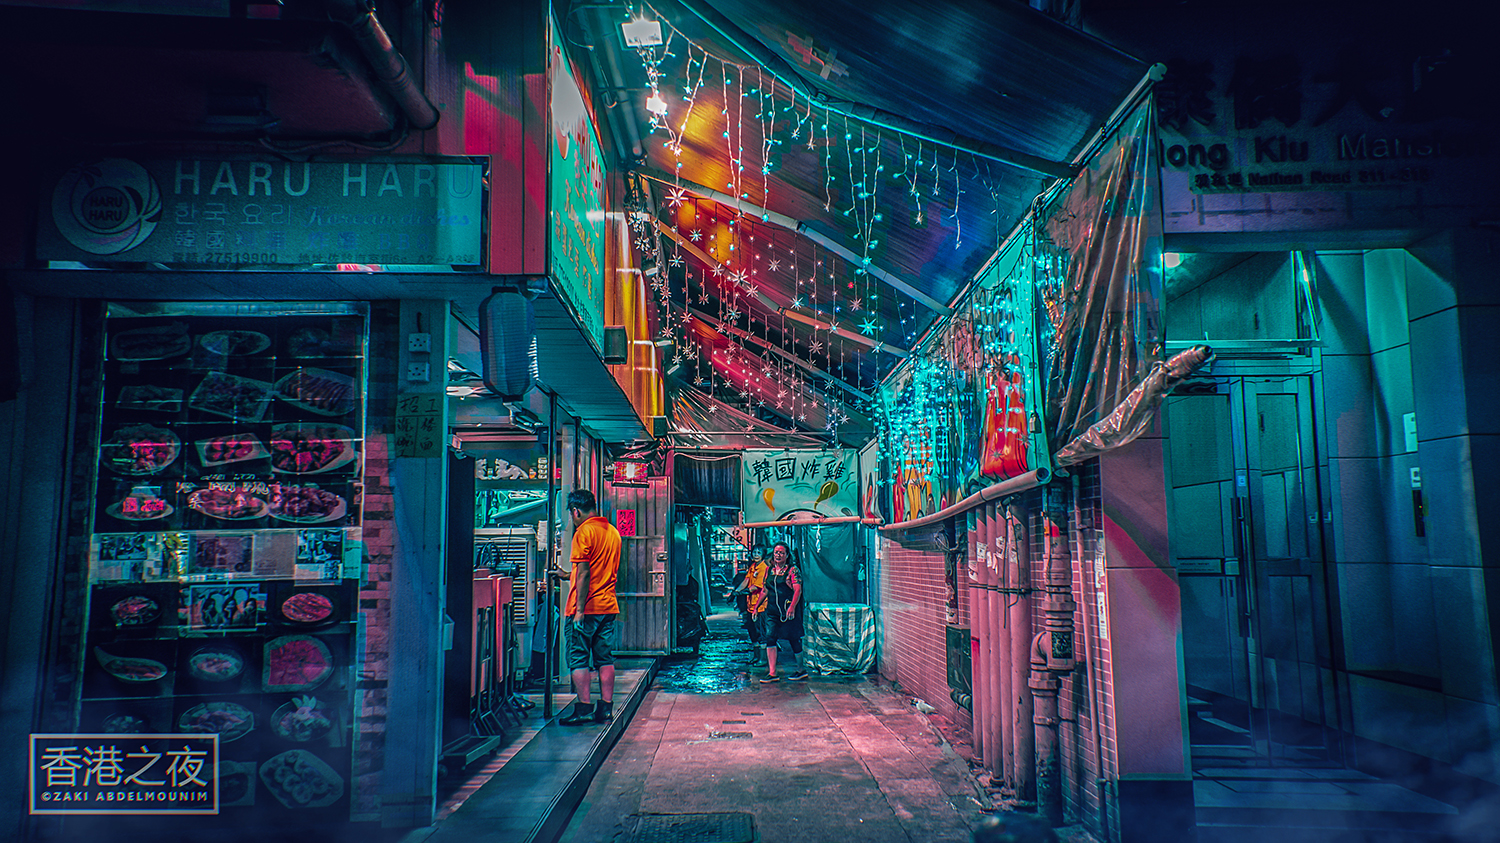 Hong Kong's Neon Glow: An Interview With Photographer Zaki